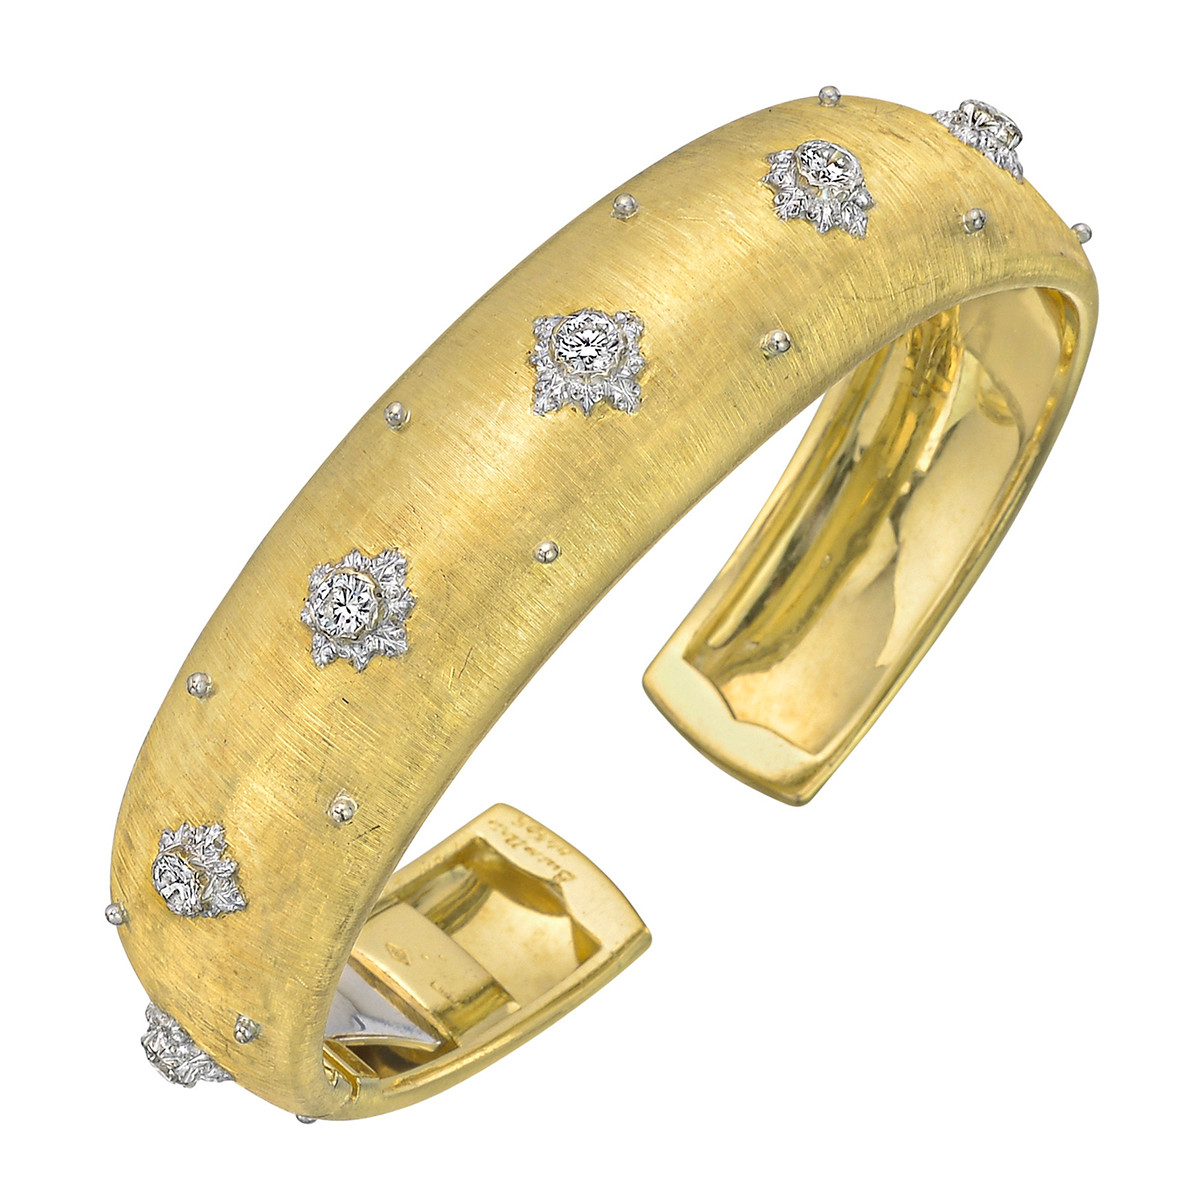 "18k Yellow Gold & Diamond ""Macri"" Cuff Bracelet"